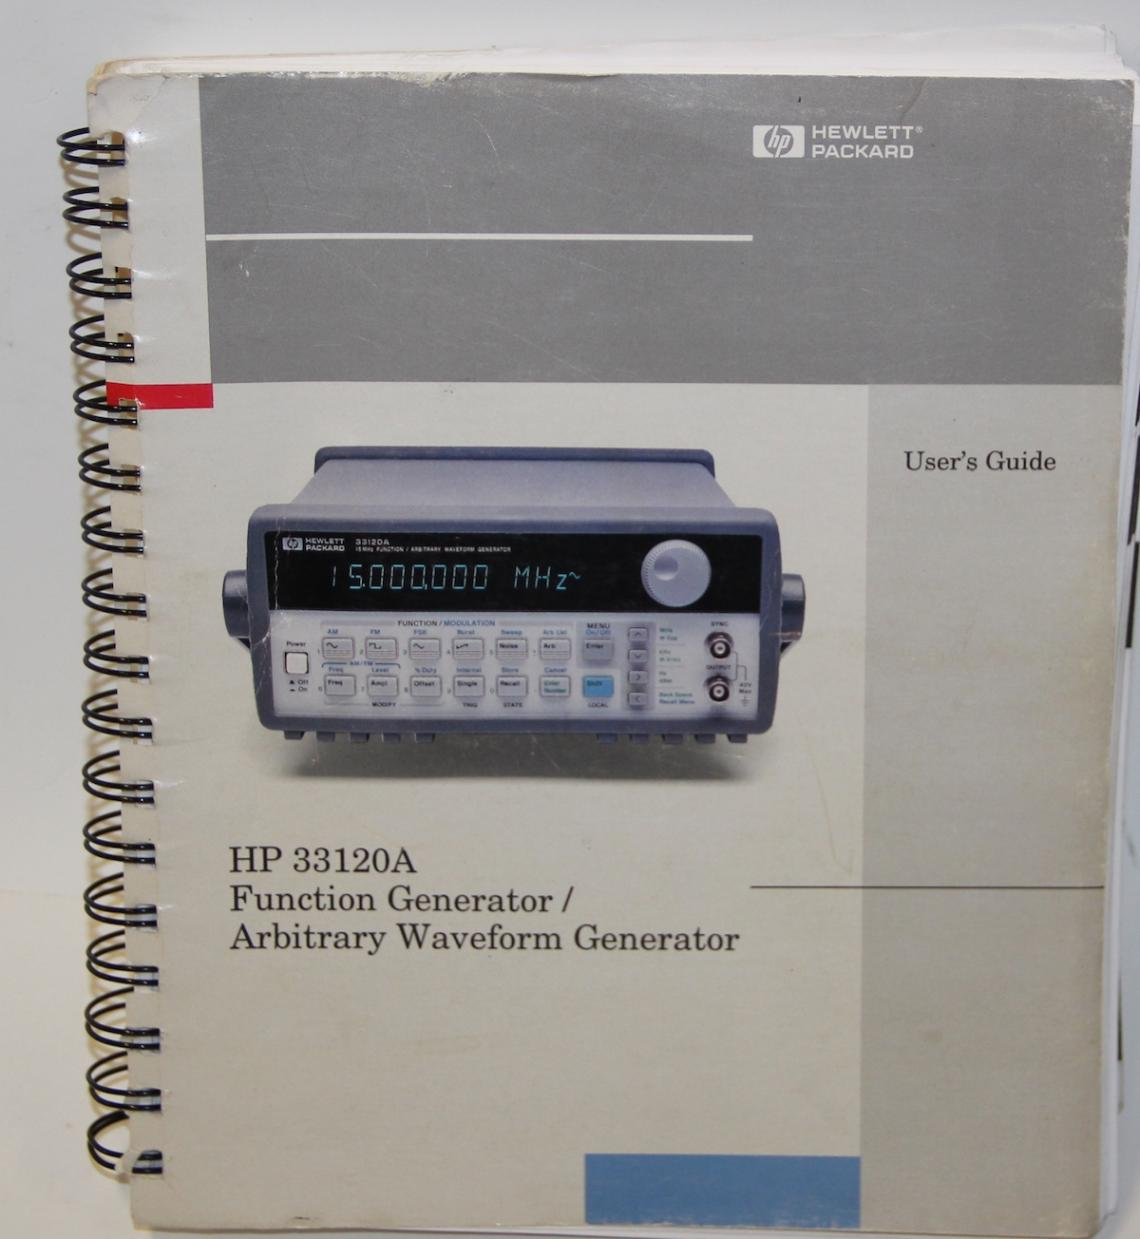 hp 33120a function arbitrary waveform generator 15 mhz rh woutersenwouters be Agilent 33120A Back Hewlett-Packard 33120A